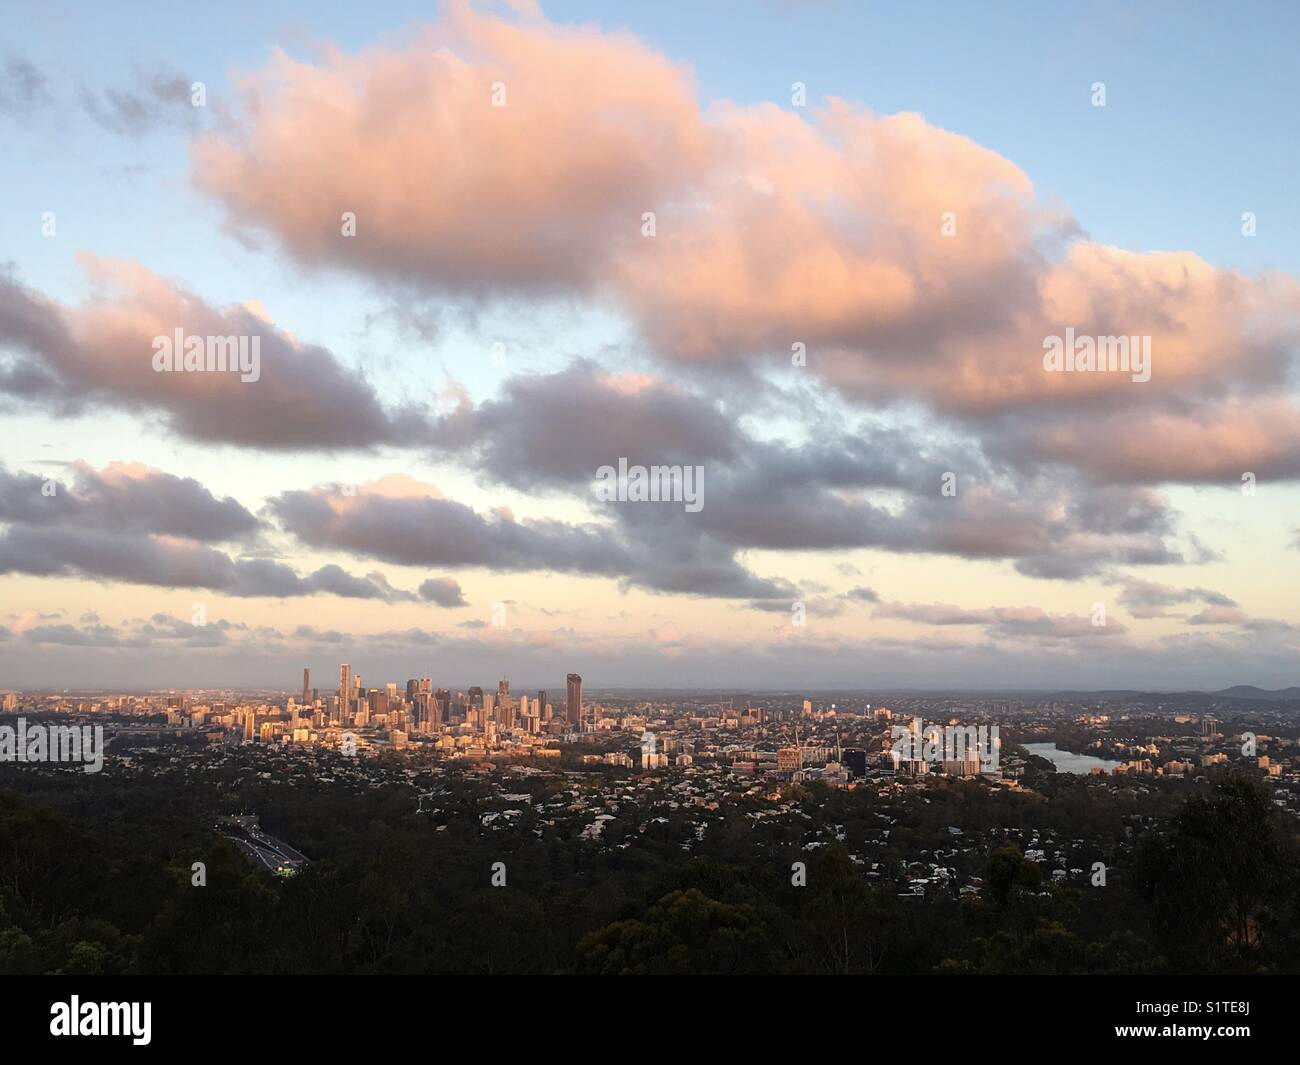 View of Brisbane CBD in late afternoon light. Taken from Mt. Coot-tha Lookout. - Stock Image